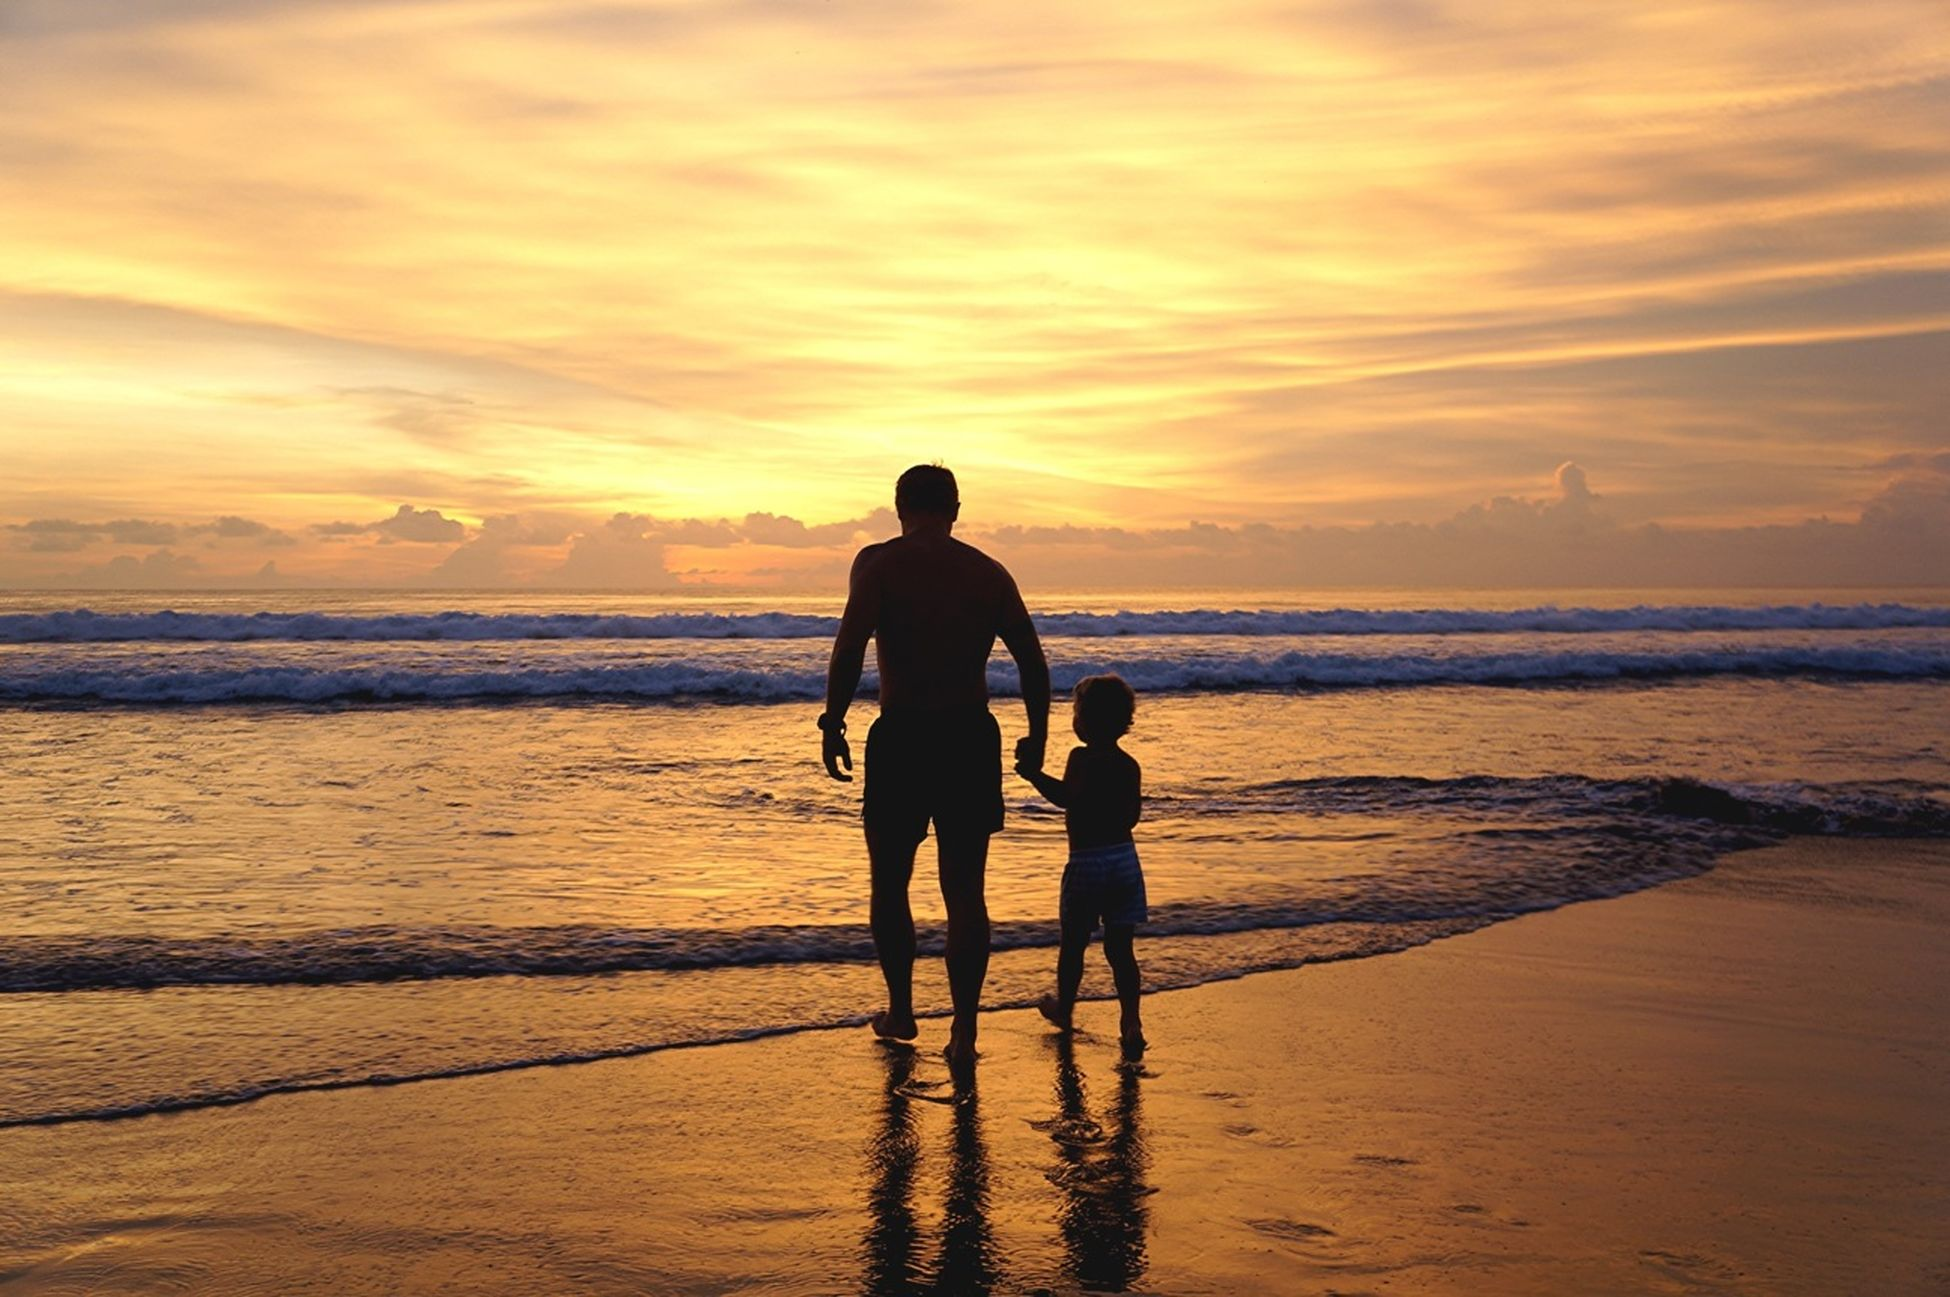 sunset, sea, beach, horizon over water, water, shore, sky, silhouette, lifestyles, leisure activity, scenics, orange color, beauty in nature, sand, men, standing, vacations, tranquil scene